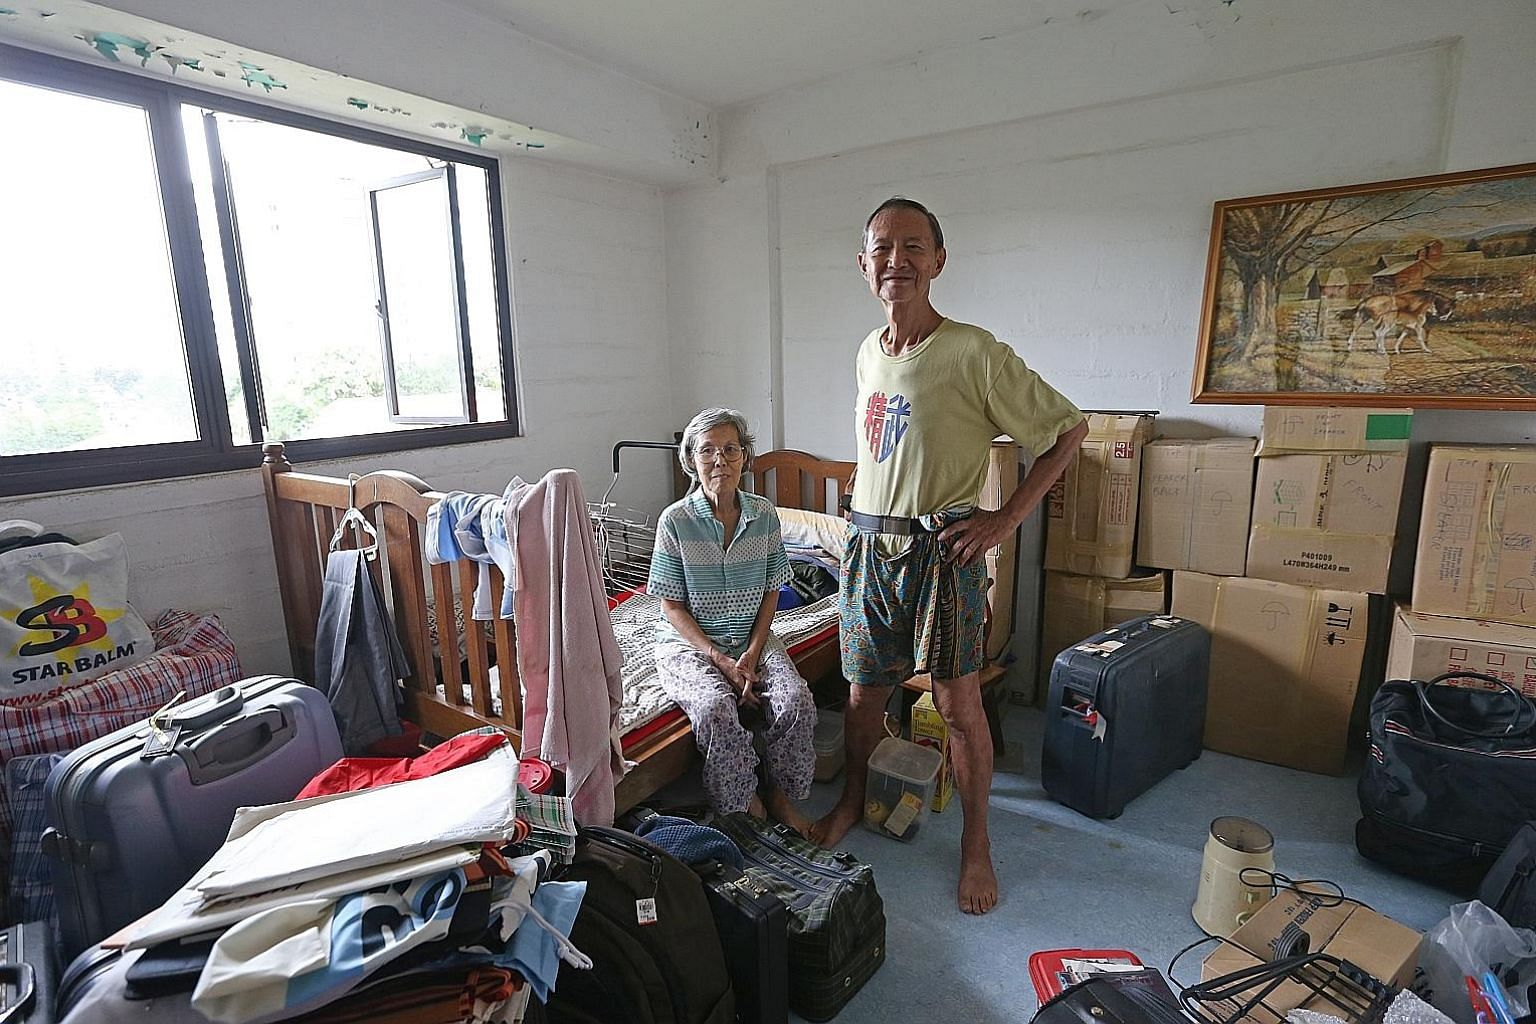 Mr Vincent Chan and his wife, Madam Vipaporn Chamdeumtha- naporn, 63, will not make today's moving-out deadline. They have not received the keys to their new home and will not be able to move out of their three-room flat in time.